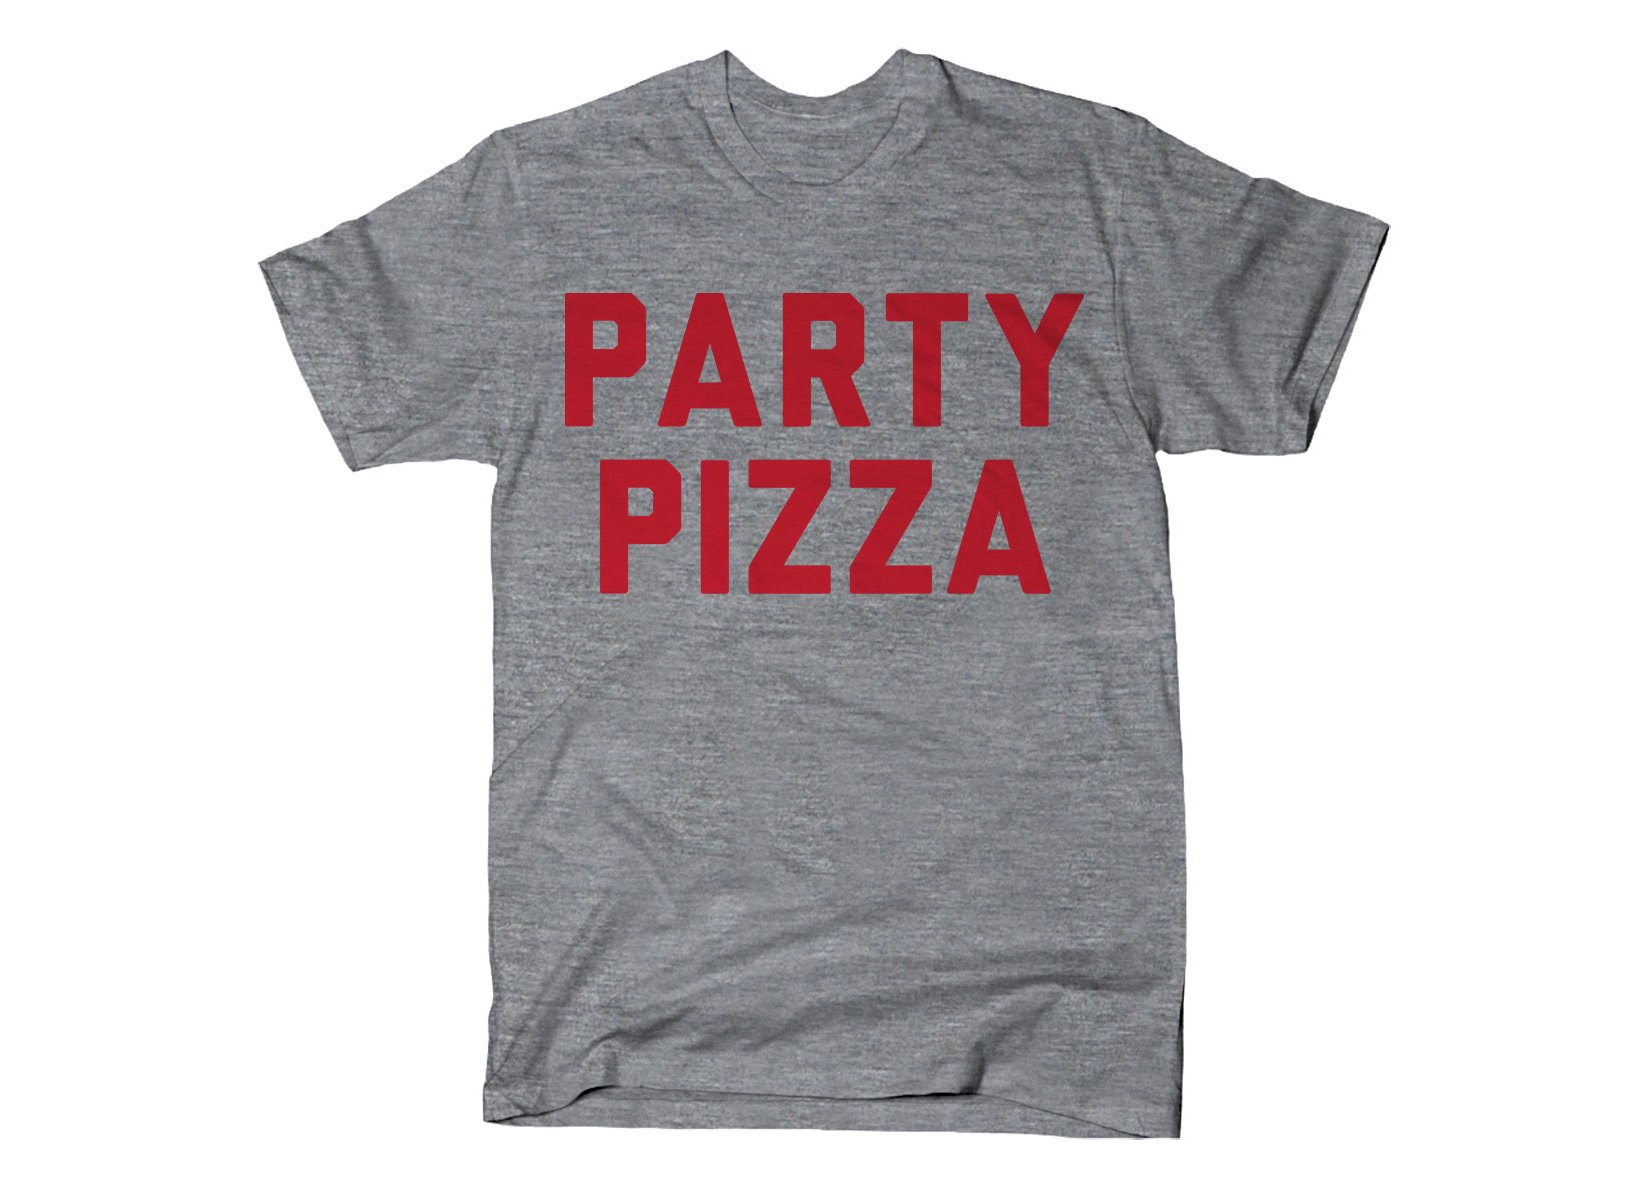 Party Pizza on Mens T-Shirt